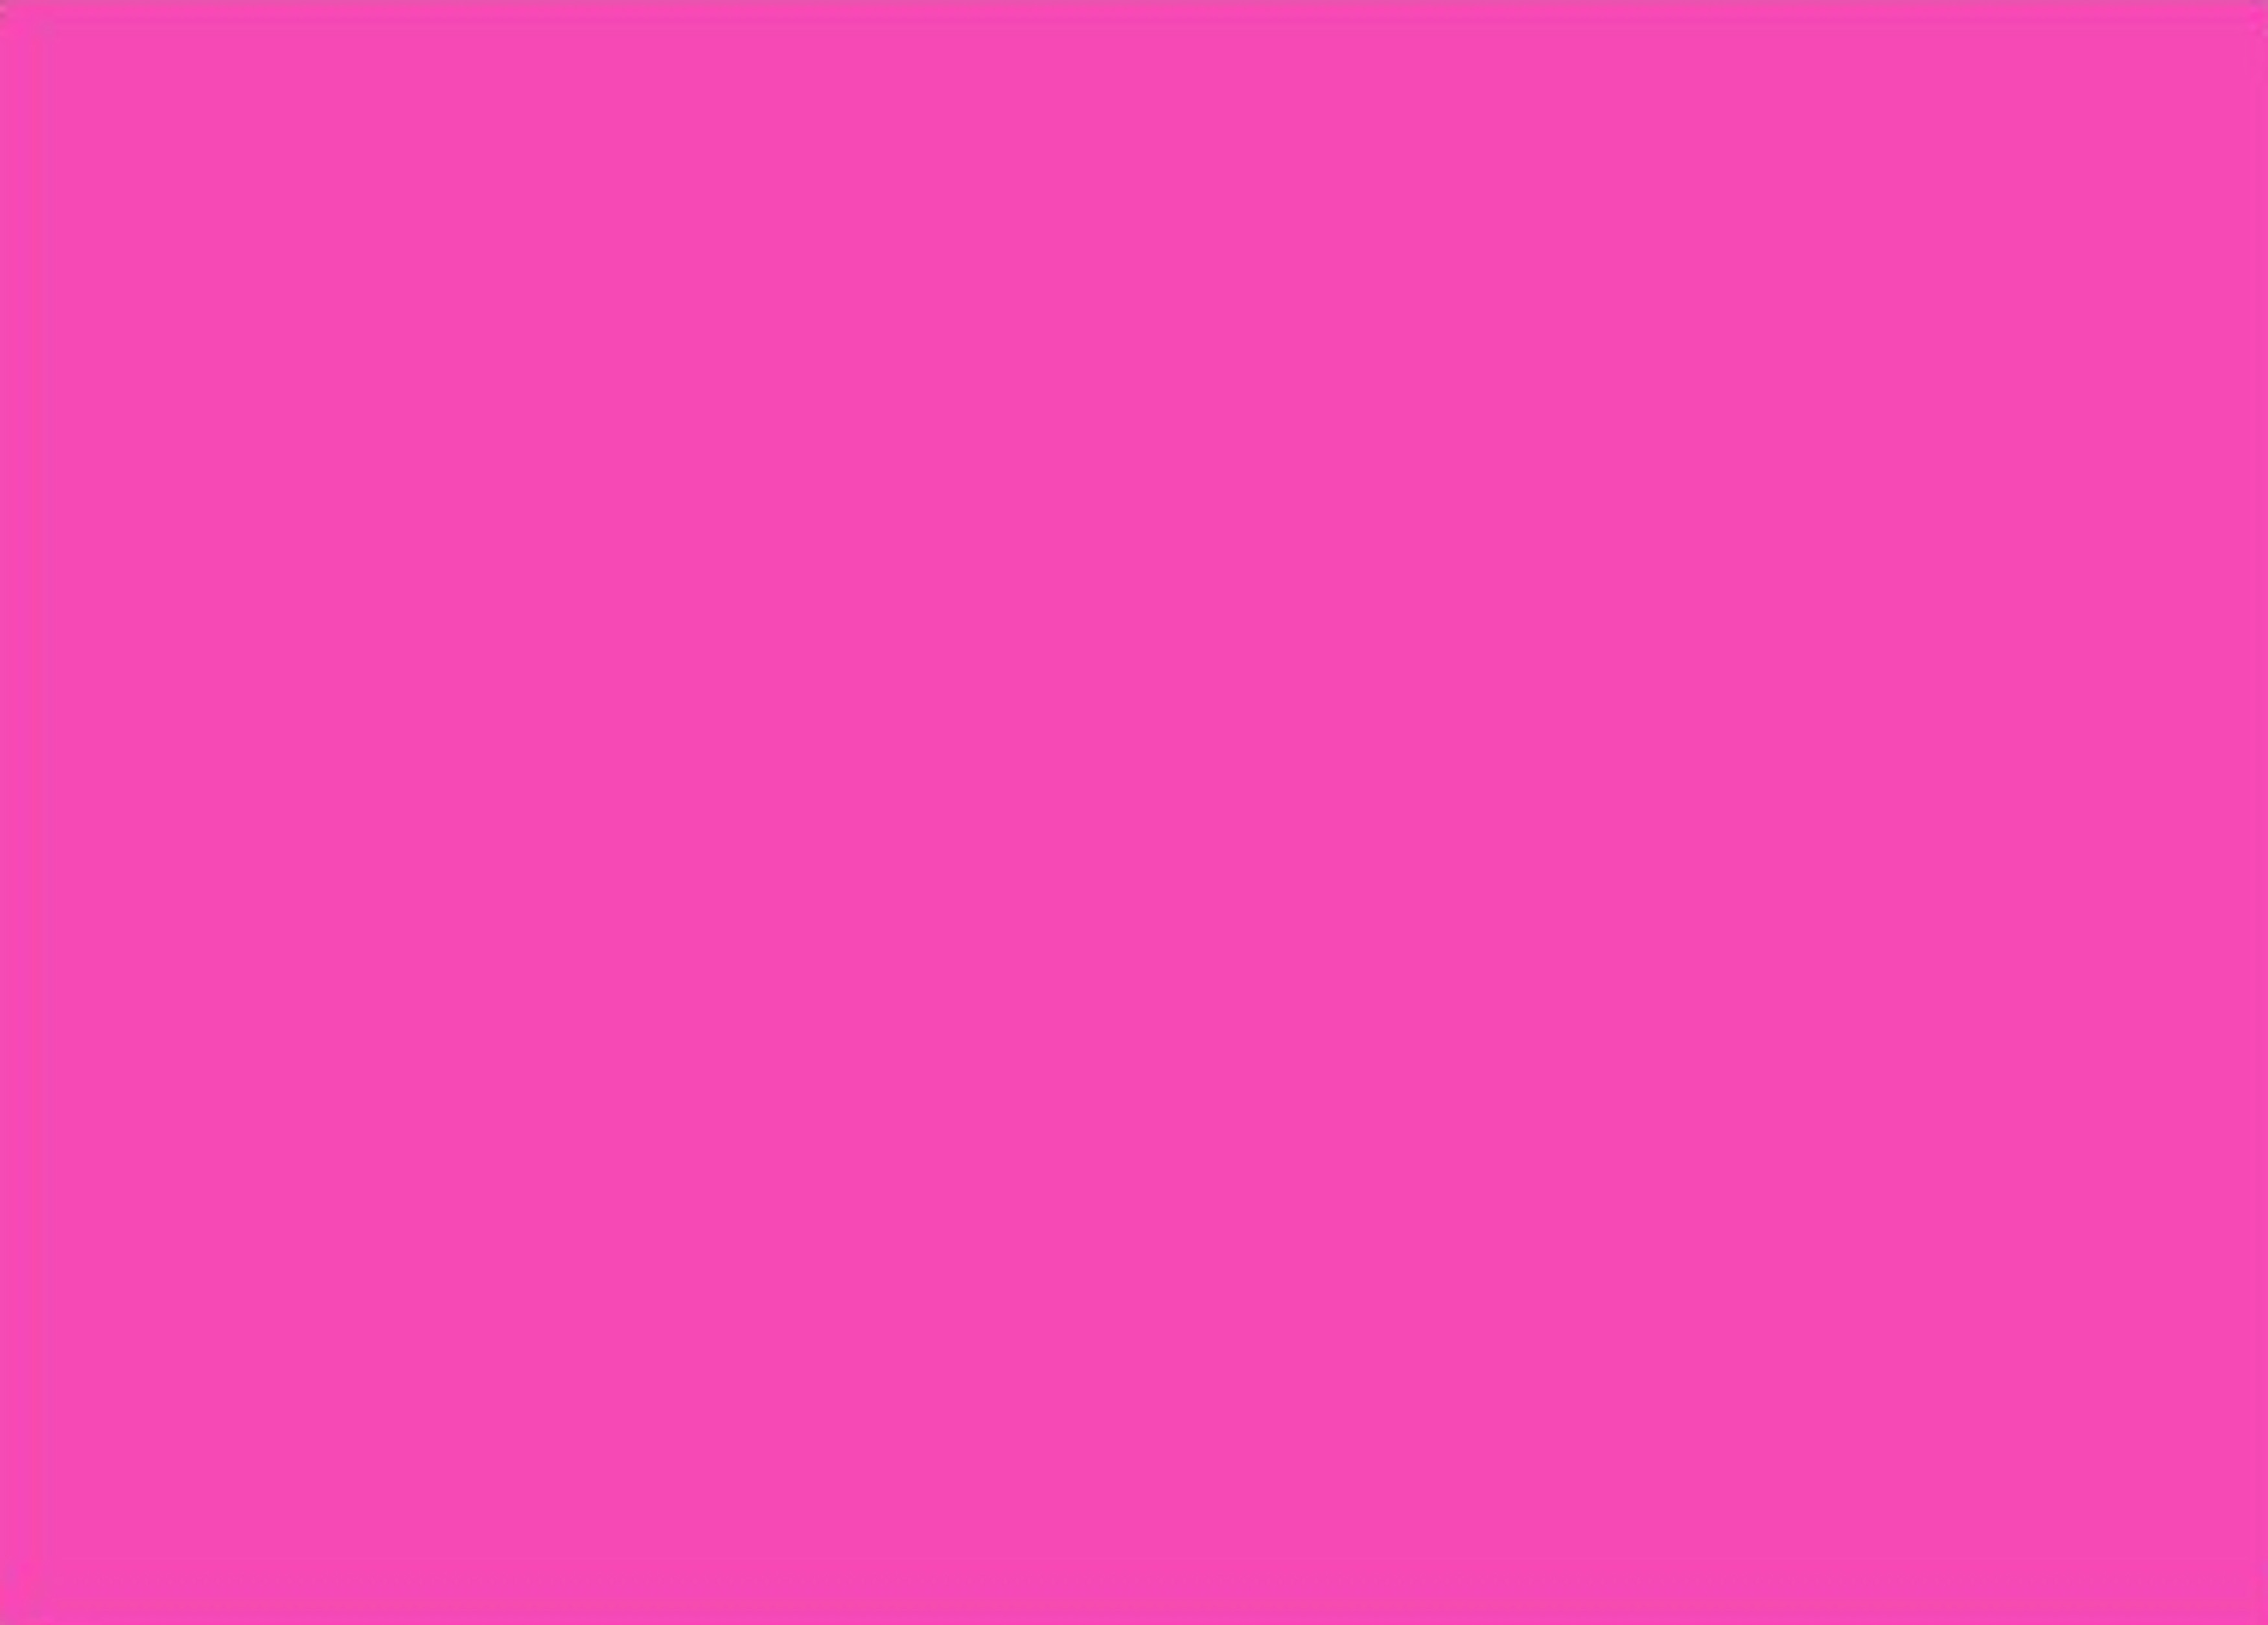 Plain Wallpaper Image Pink